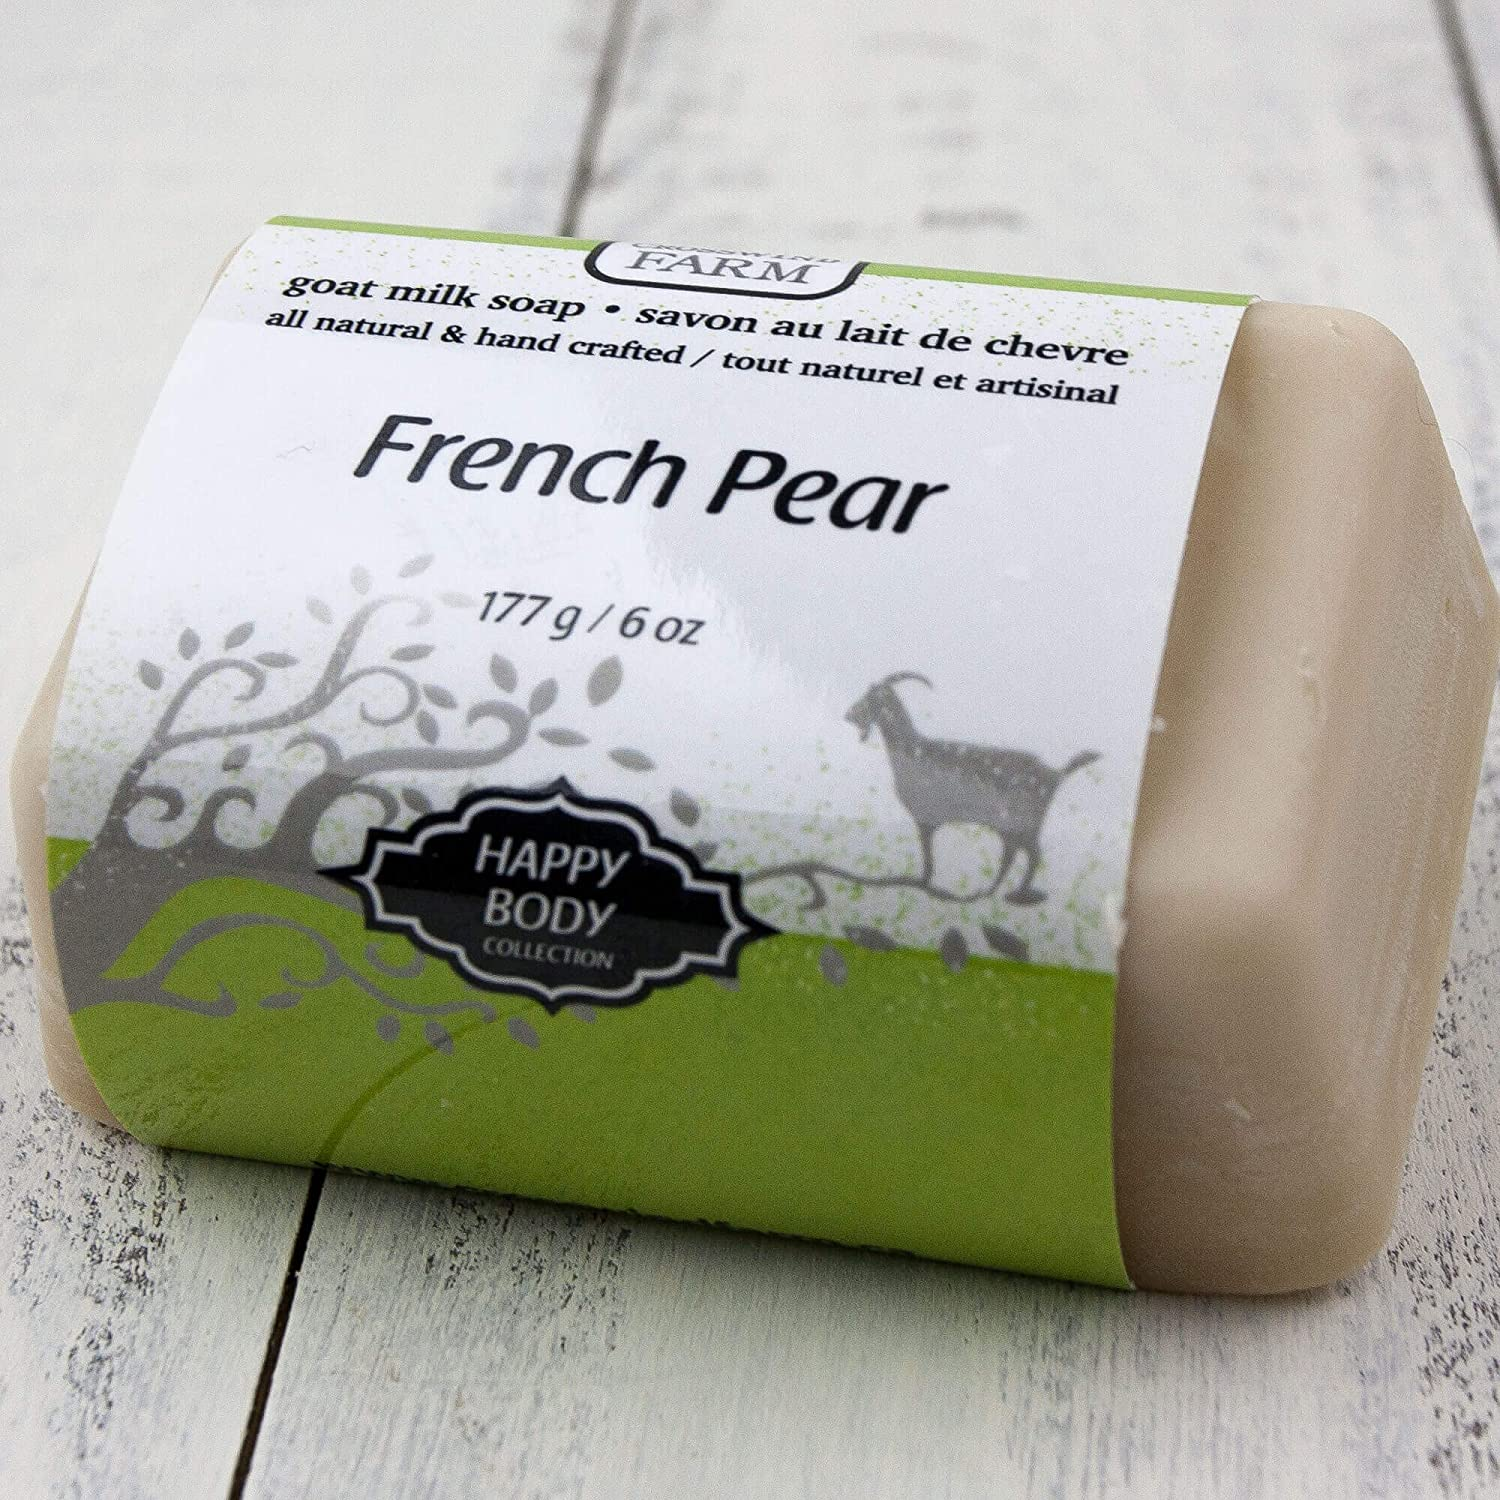 French Pear Goat Milk Soap